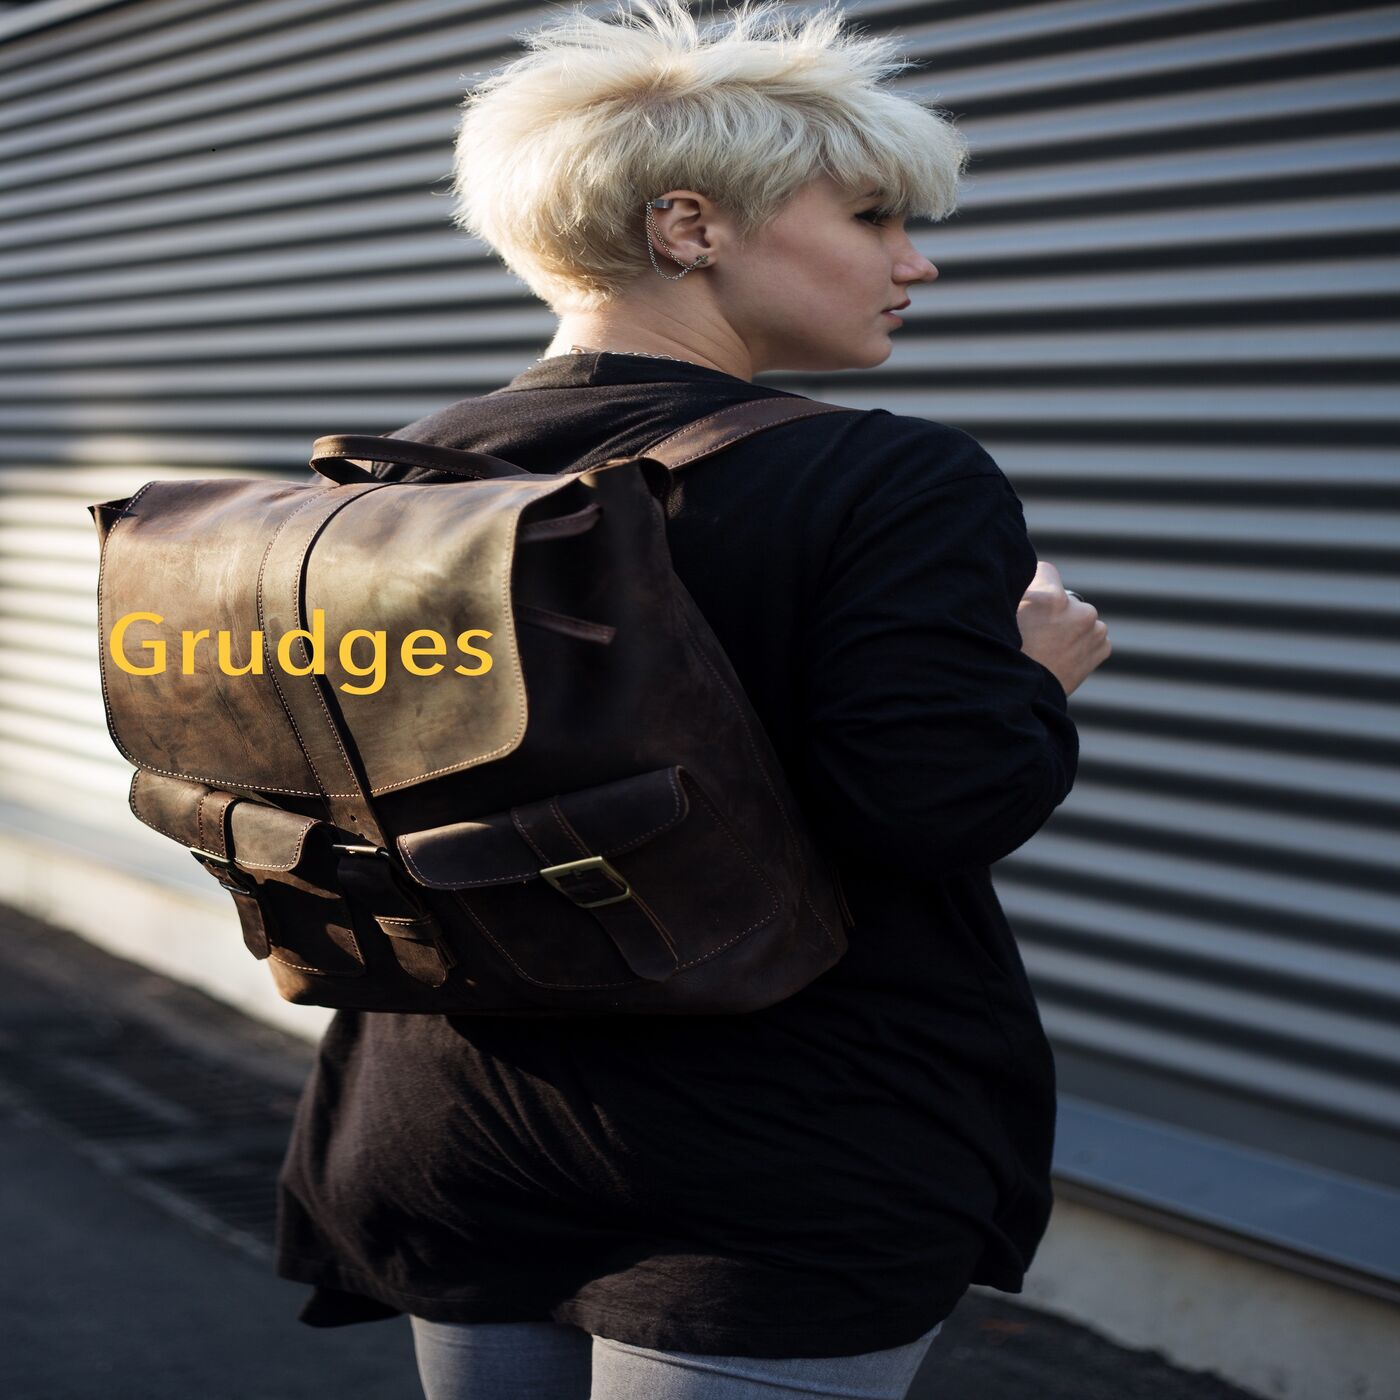 Grudge Pack - Episode #40